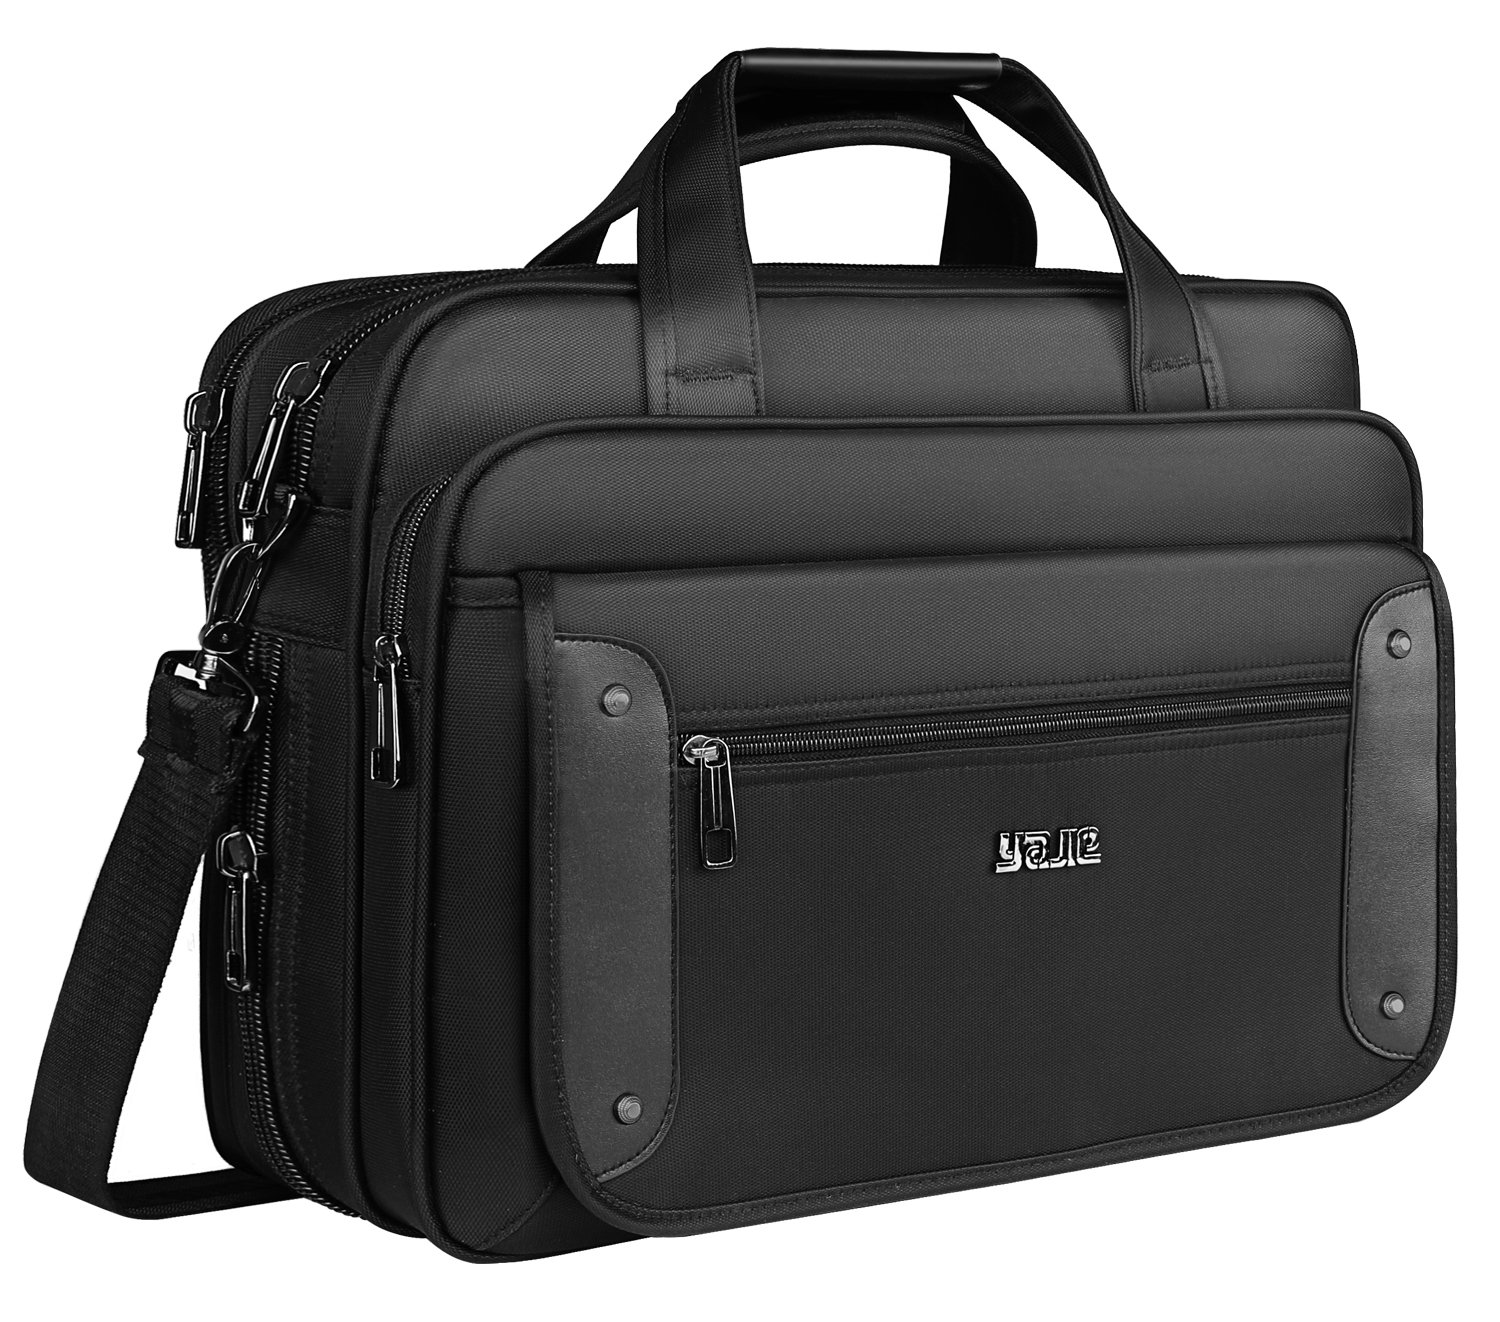 15.6 inch Laptop Bag,Laptop Briefcase, Business Office Bag Men Women,Stylish Nylon Multi-Functional Organizer Messenger Bags Men Women Fit 15.6 inch Notebook MacBook Tablet - Black